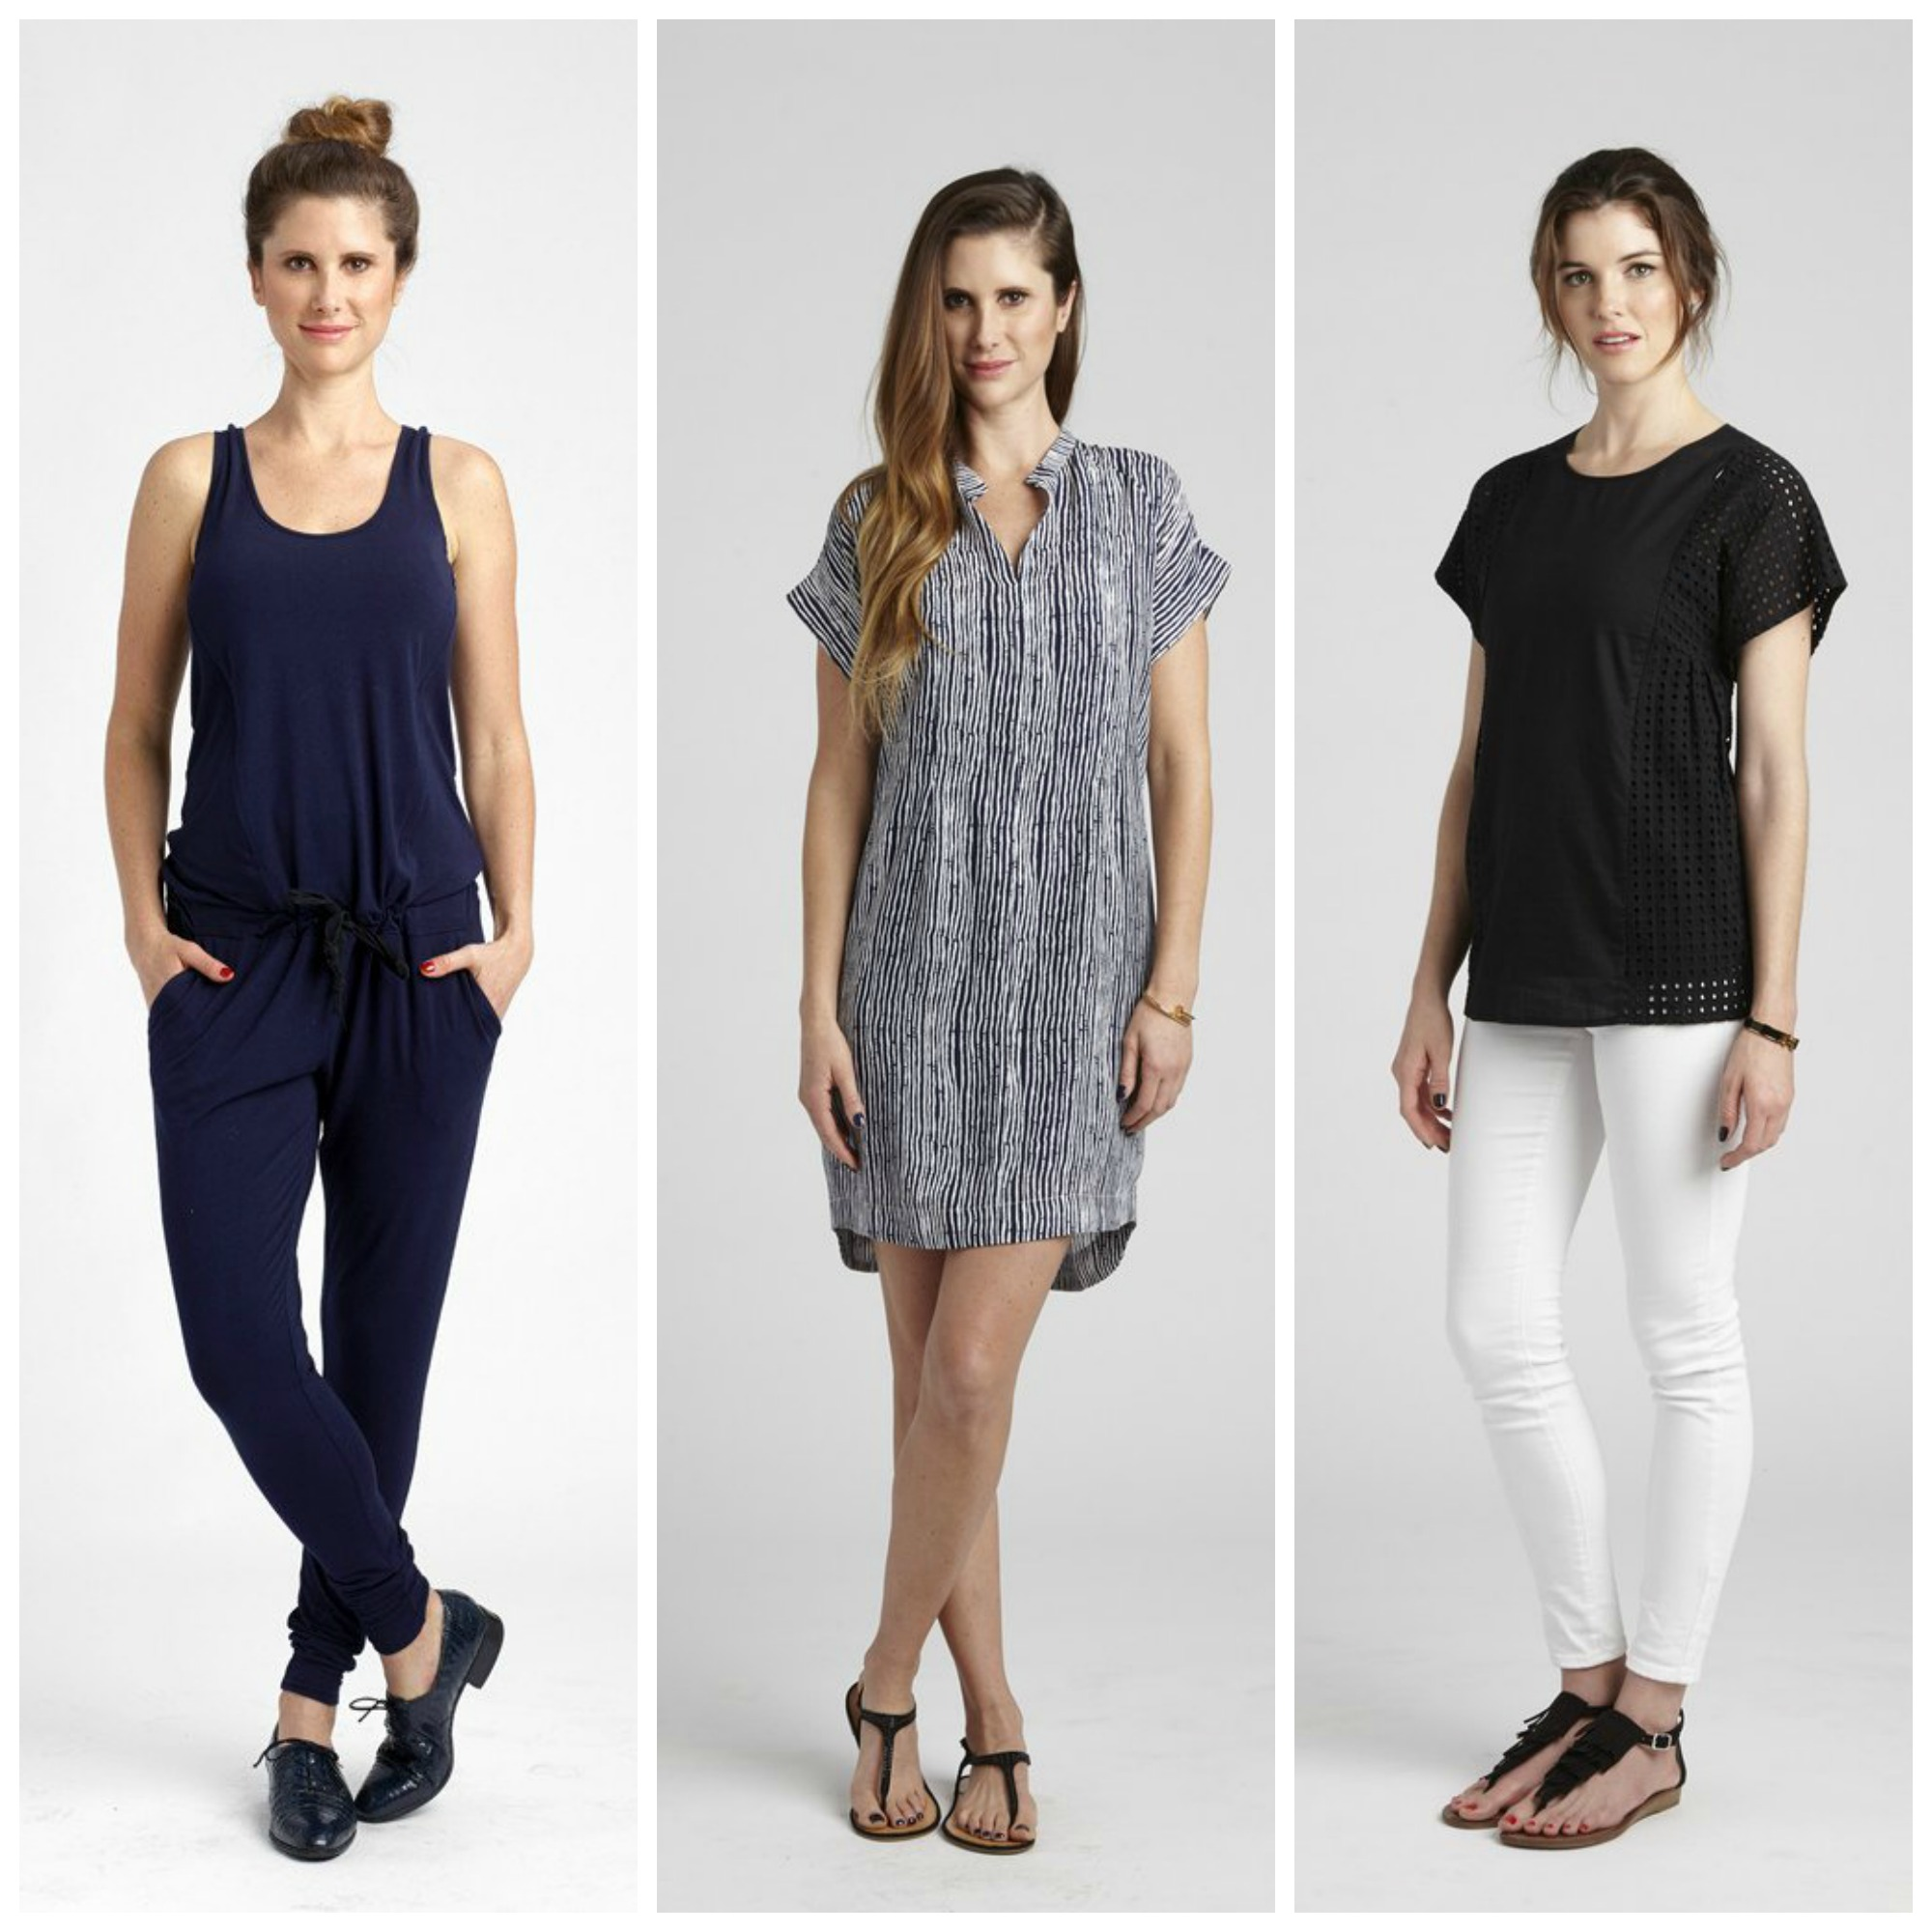 ca71c4344e648 With discreetly hidden zipper openings, soft, machine-friendly fabrics and  chic silhouettes, every piece of their maternity and nursing wear  collection was ...